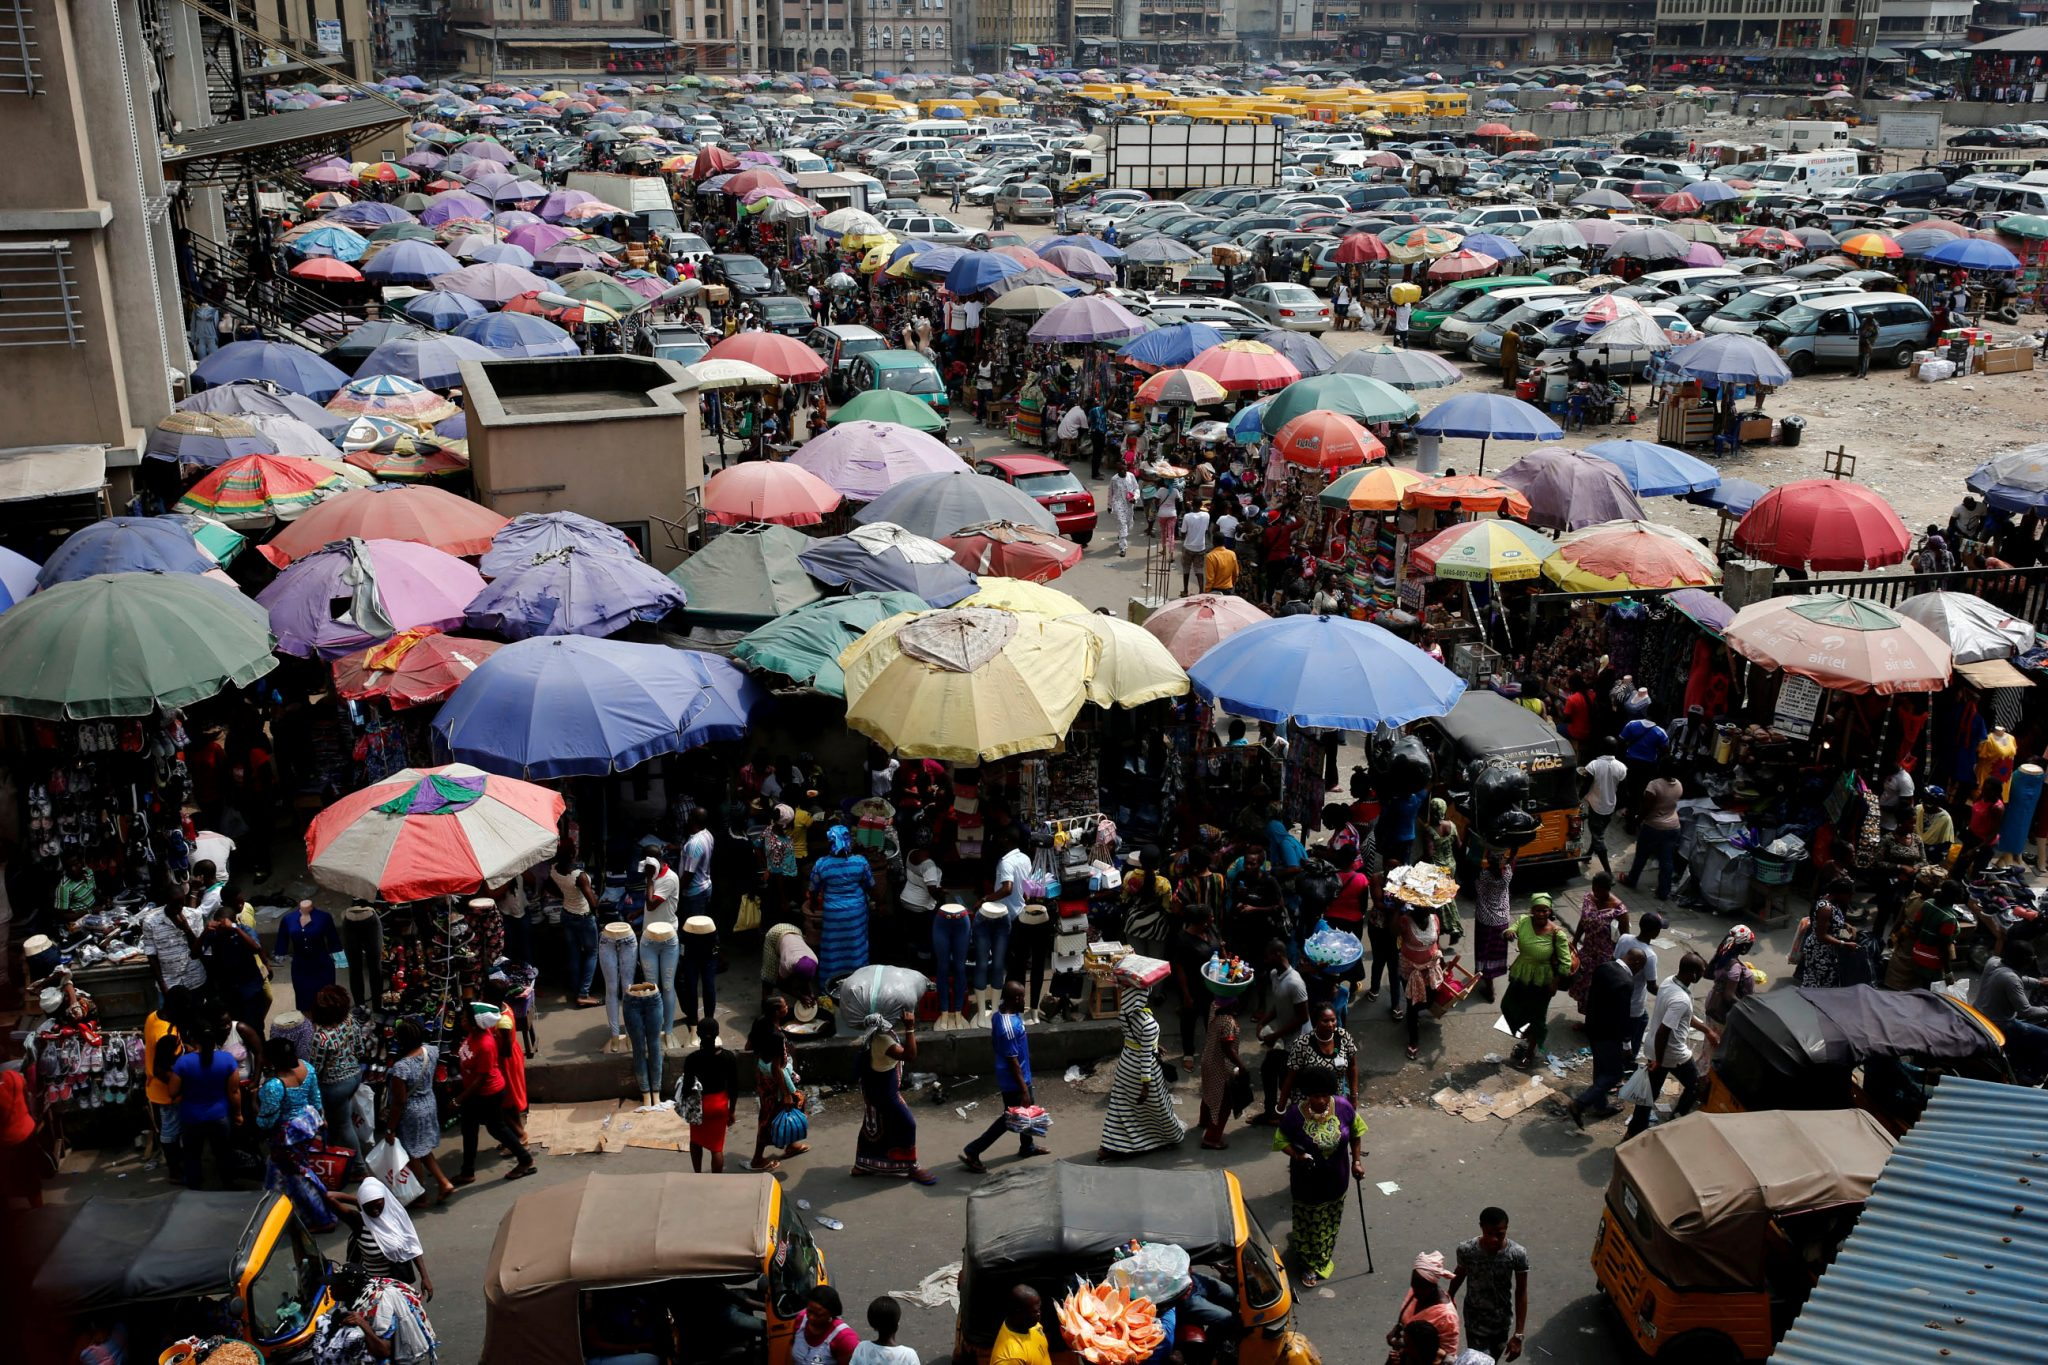 A view of the Oluwole Urban Market in the central business district, near Marina in Lagos